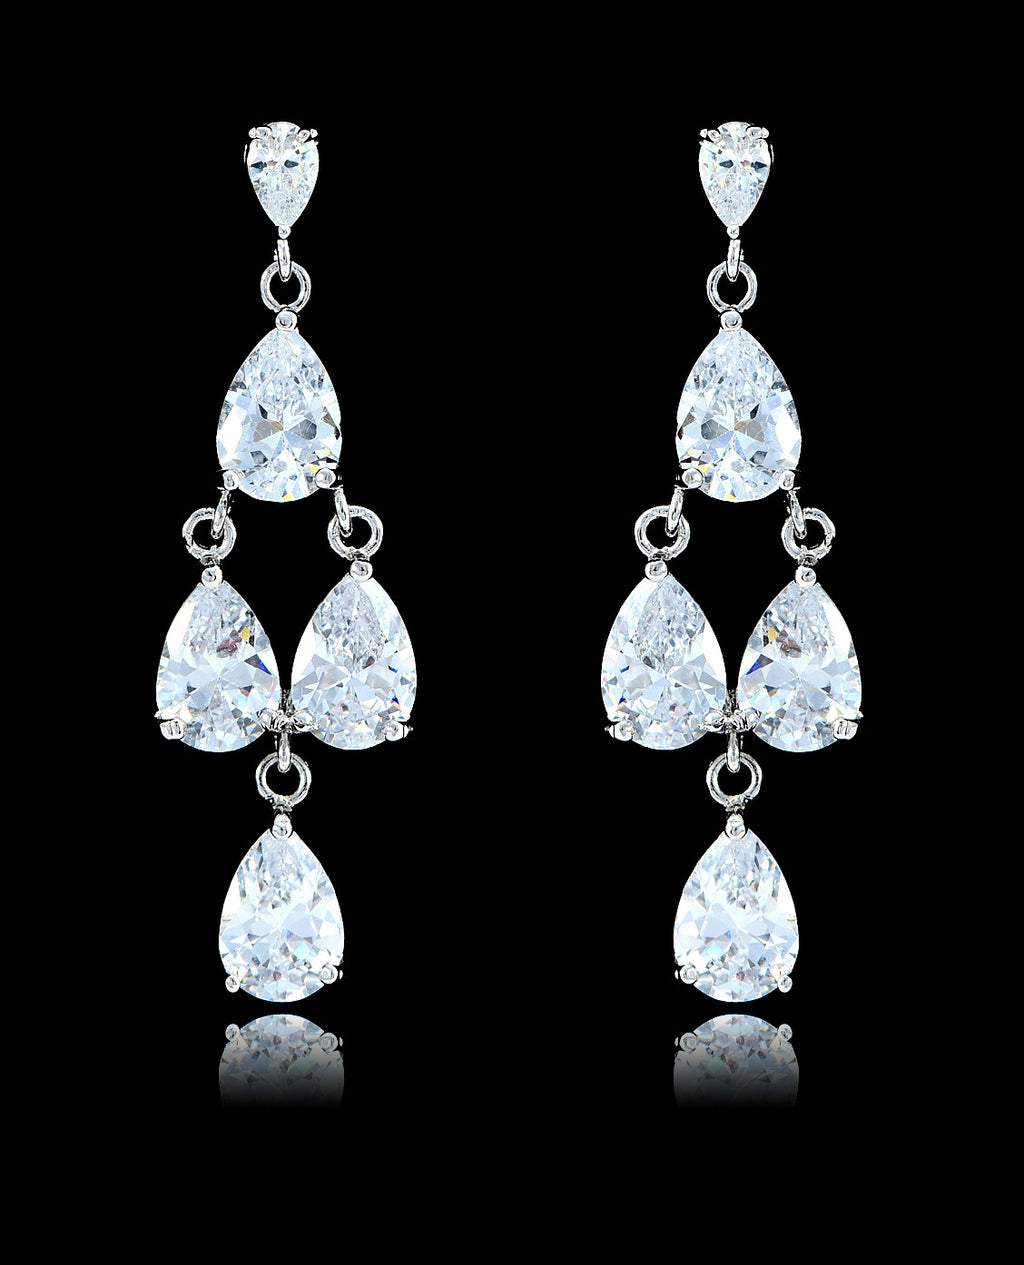 Crystal Cubic Zirconia Chandelier Earrings - Bedazzled By Jeanelle - 1